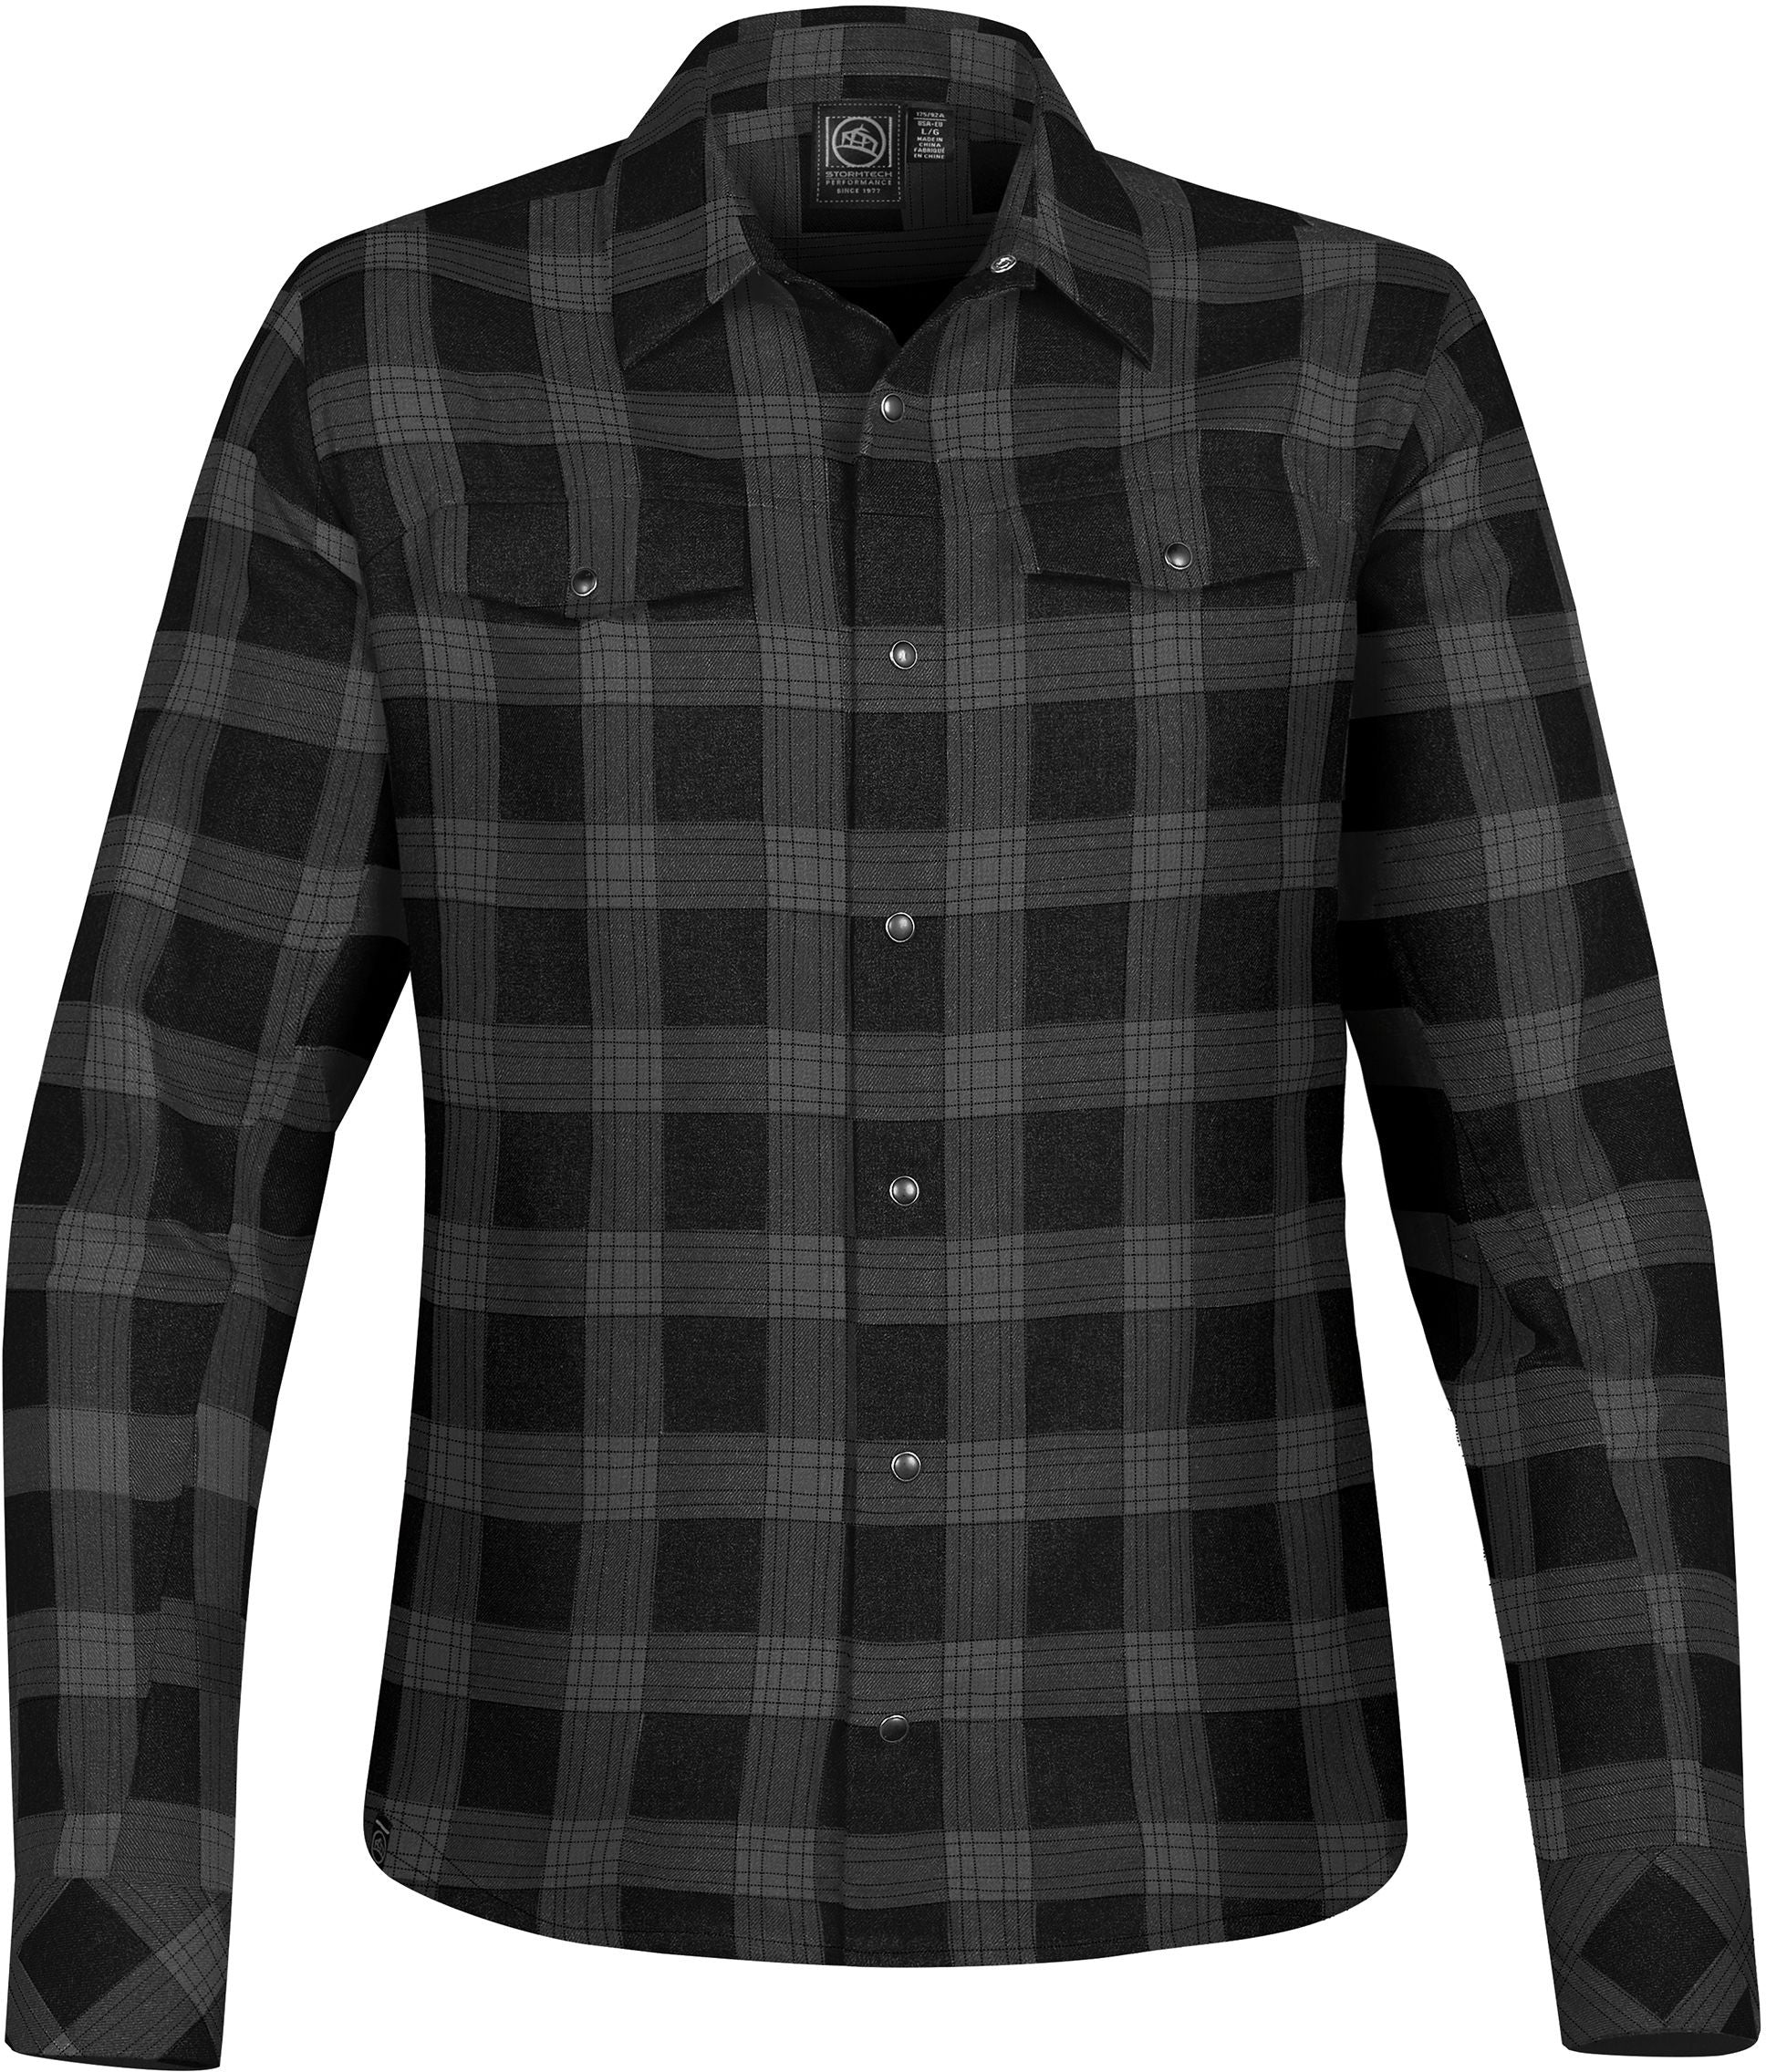 STORMTECH LADIES LOGAN SNAP FRONT PLAID SHIRT